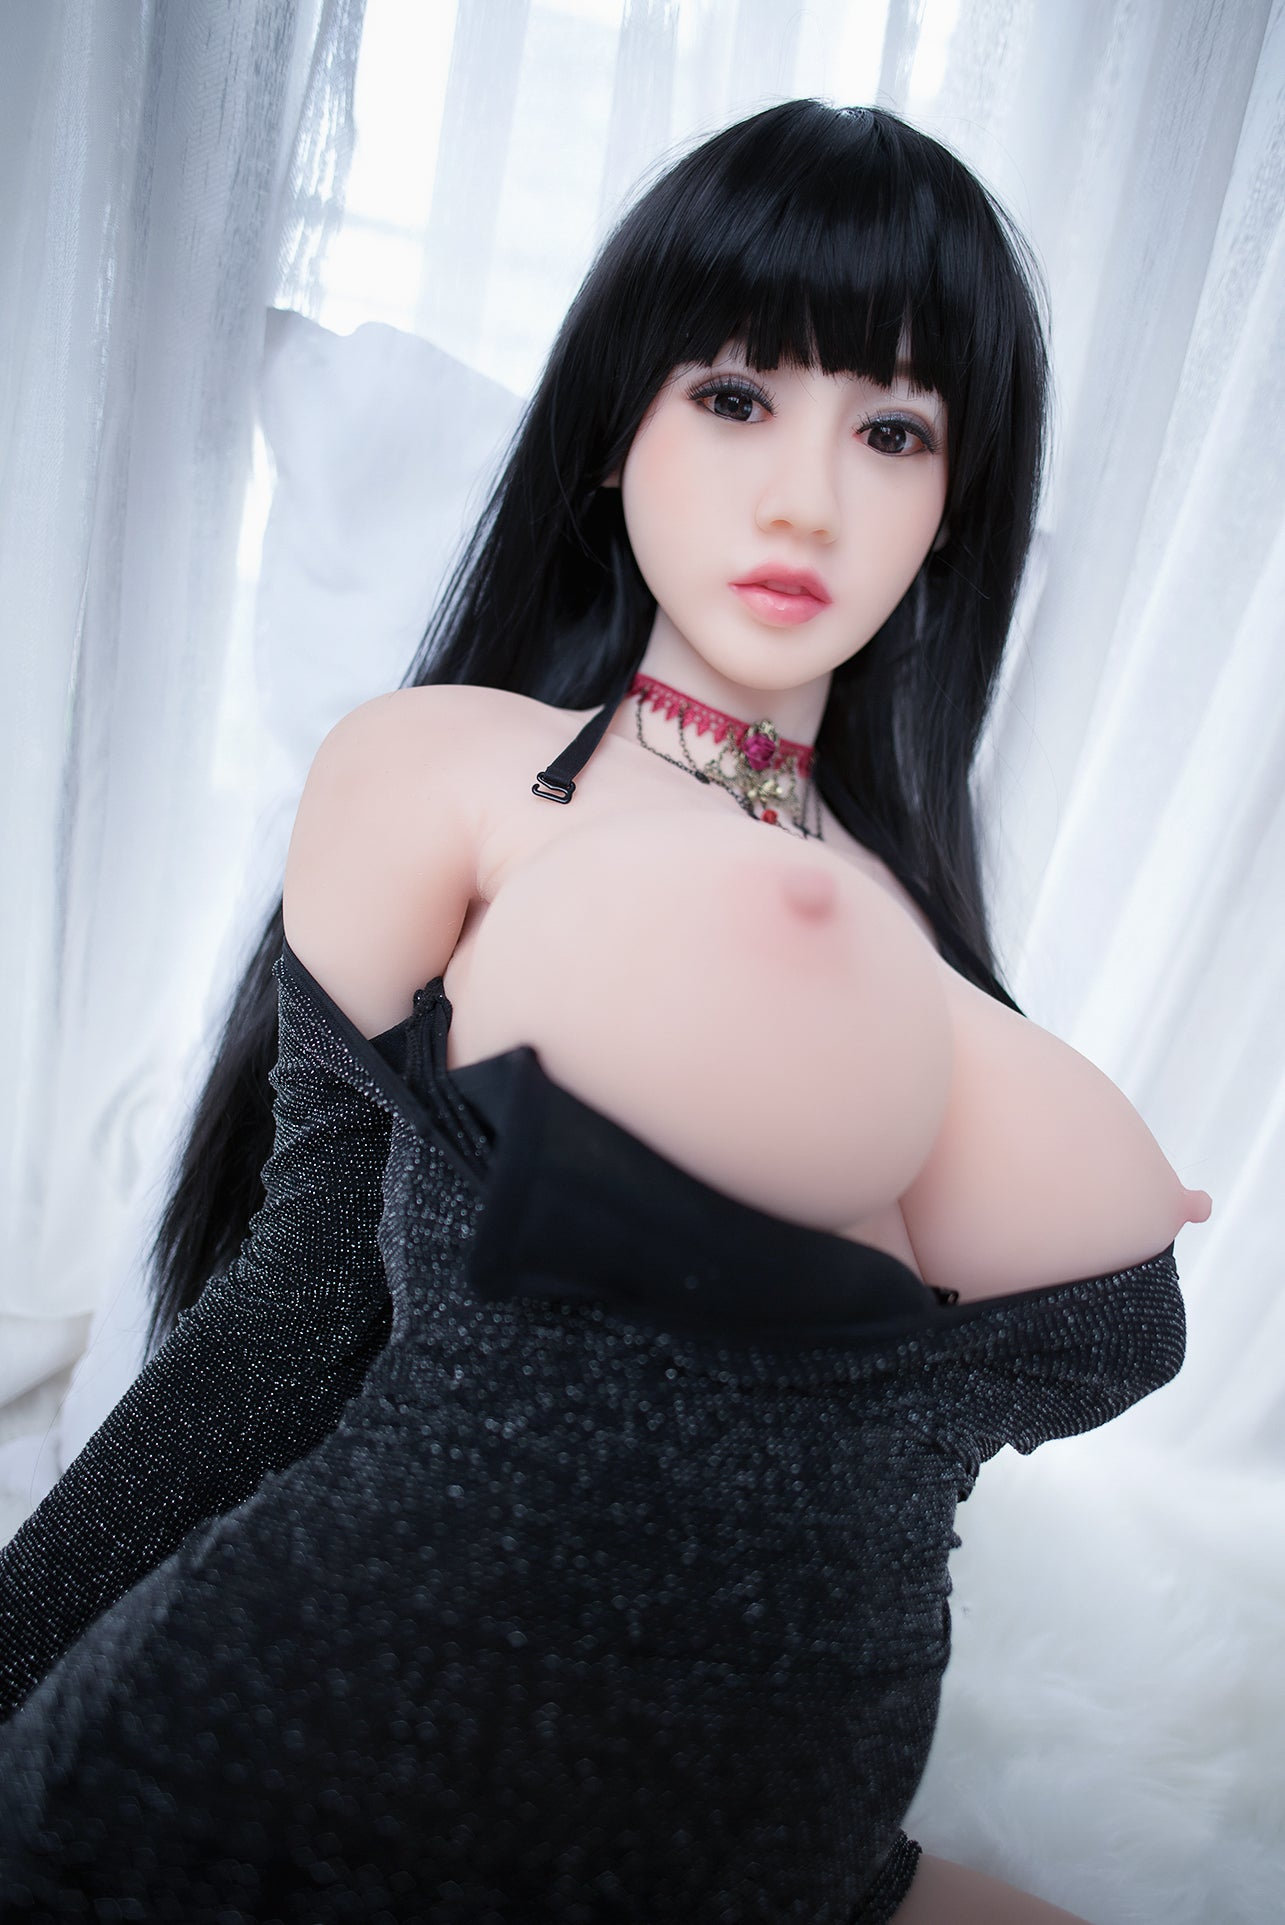 NATALIA: 5ft 3in (160cm) Lifelike Sex Doll